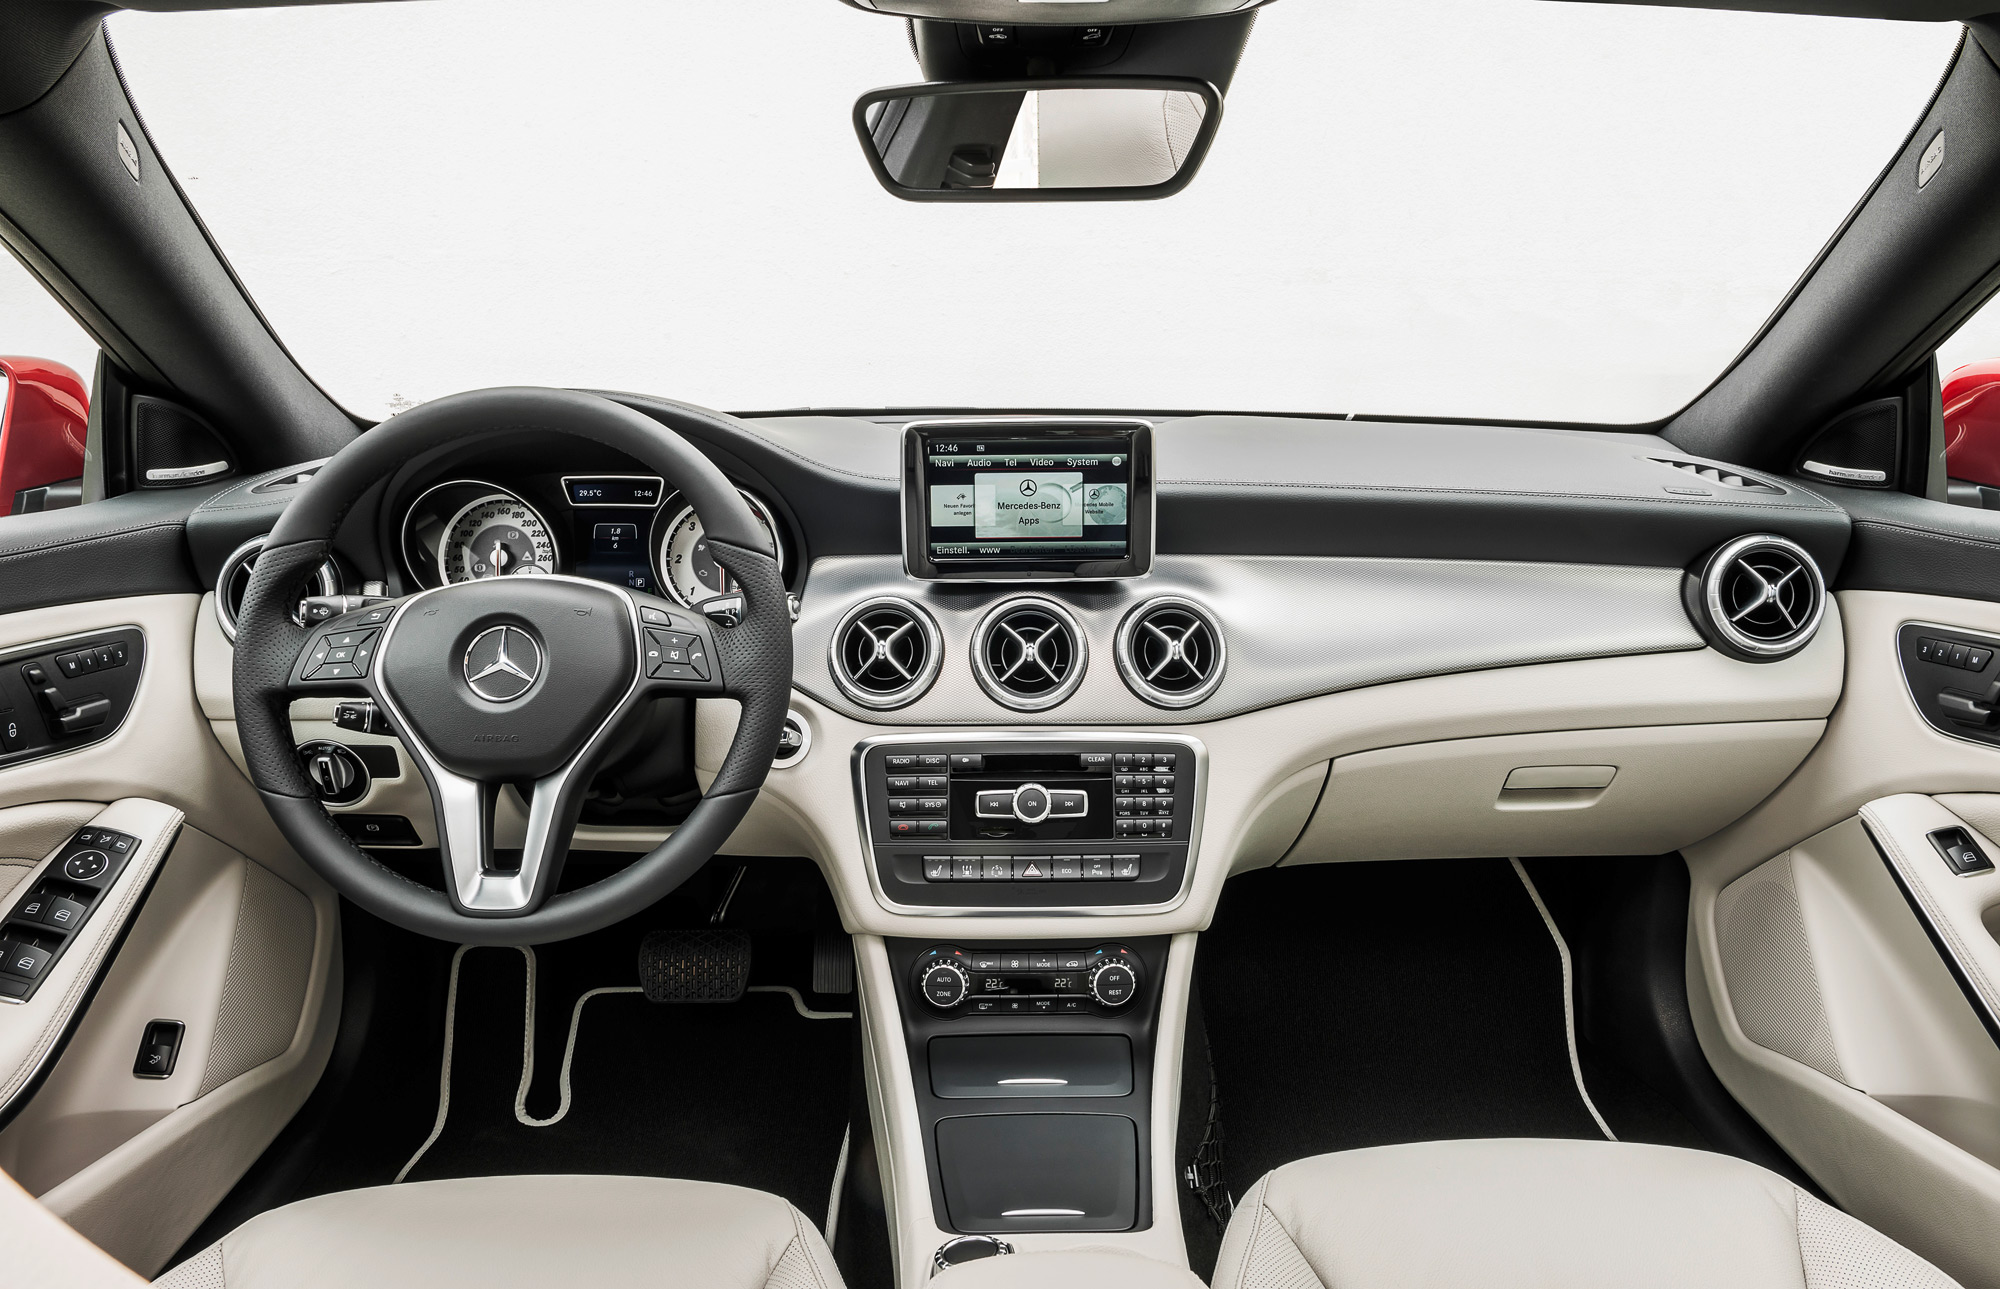 Superb Mercedes Benz Cla 2014 Interior 2016 Mercedes Benz Cla 2014 Interior